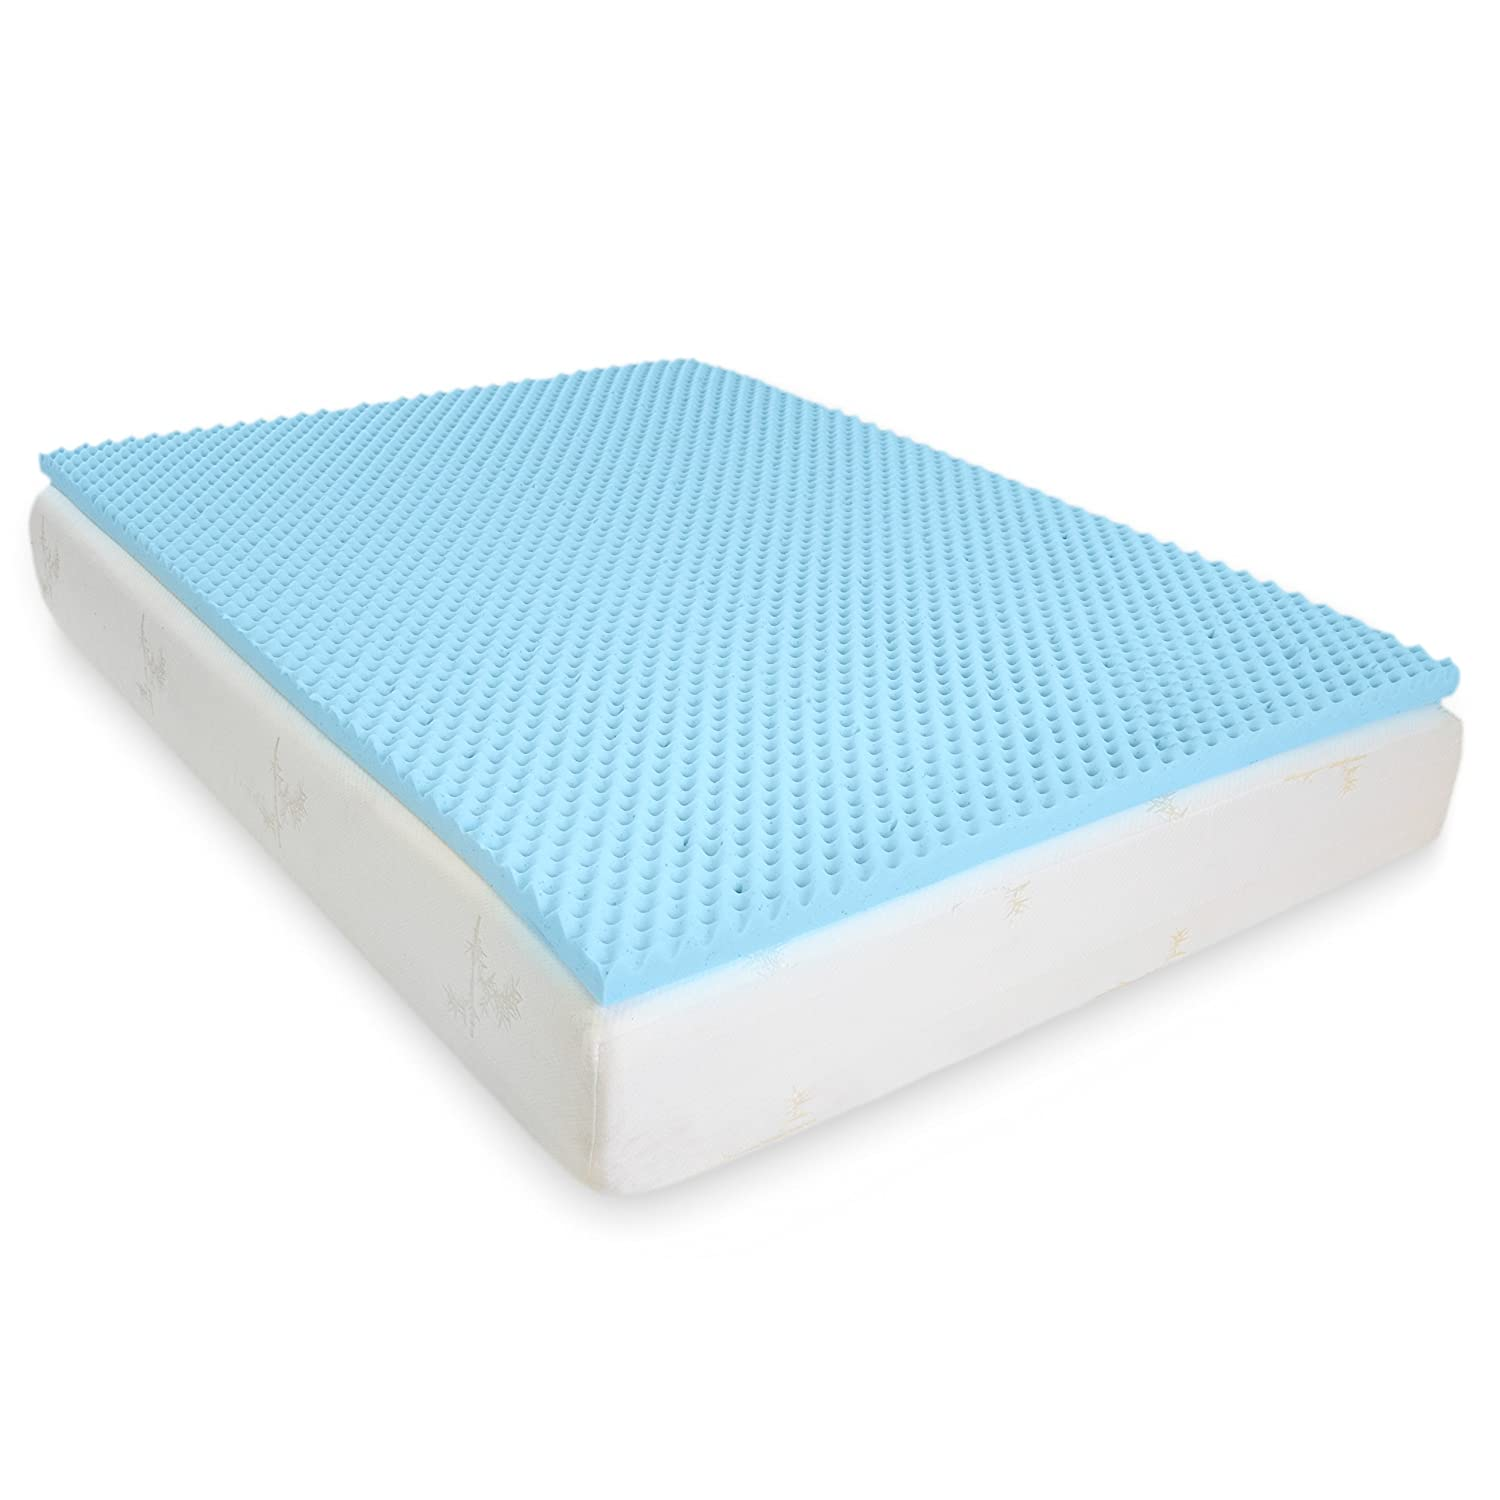 Egg Crate Gel Memory Foam Mattress Topper - Twin, Mattress Pad Provides  Great Pressure Relief, Gel Infusion Contributes to a Cooler Night Sleep  (Twin): ... - Amazon.com: Milliard 2in. Egg Crate Gel Memory Foam Mattress